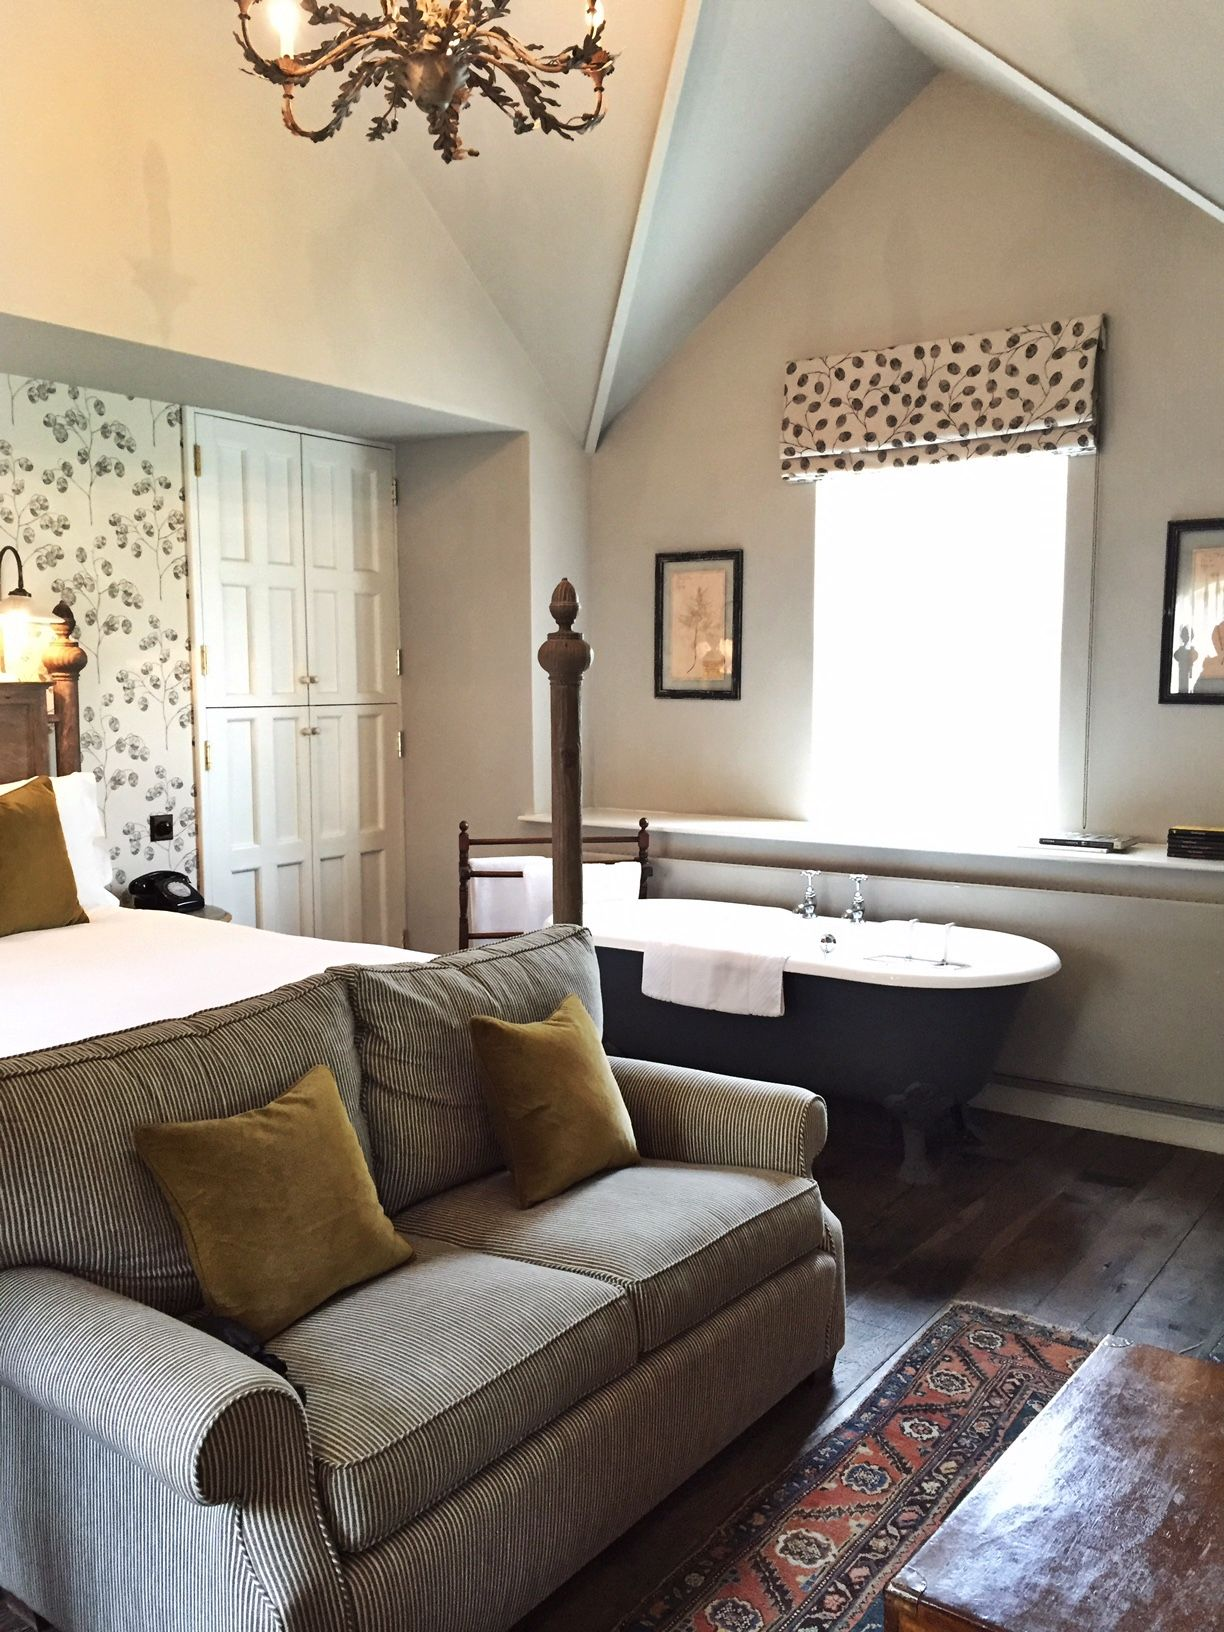 A Weekend At The Pig Bedroom With Bathtub Bedroom Trends